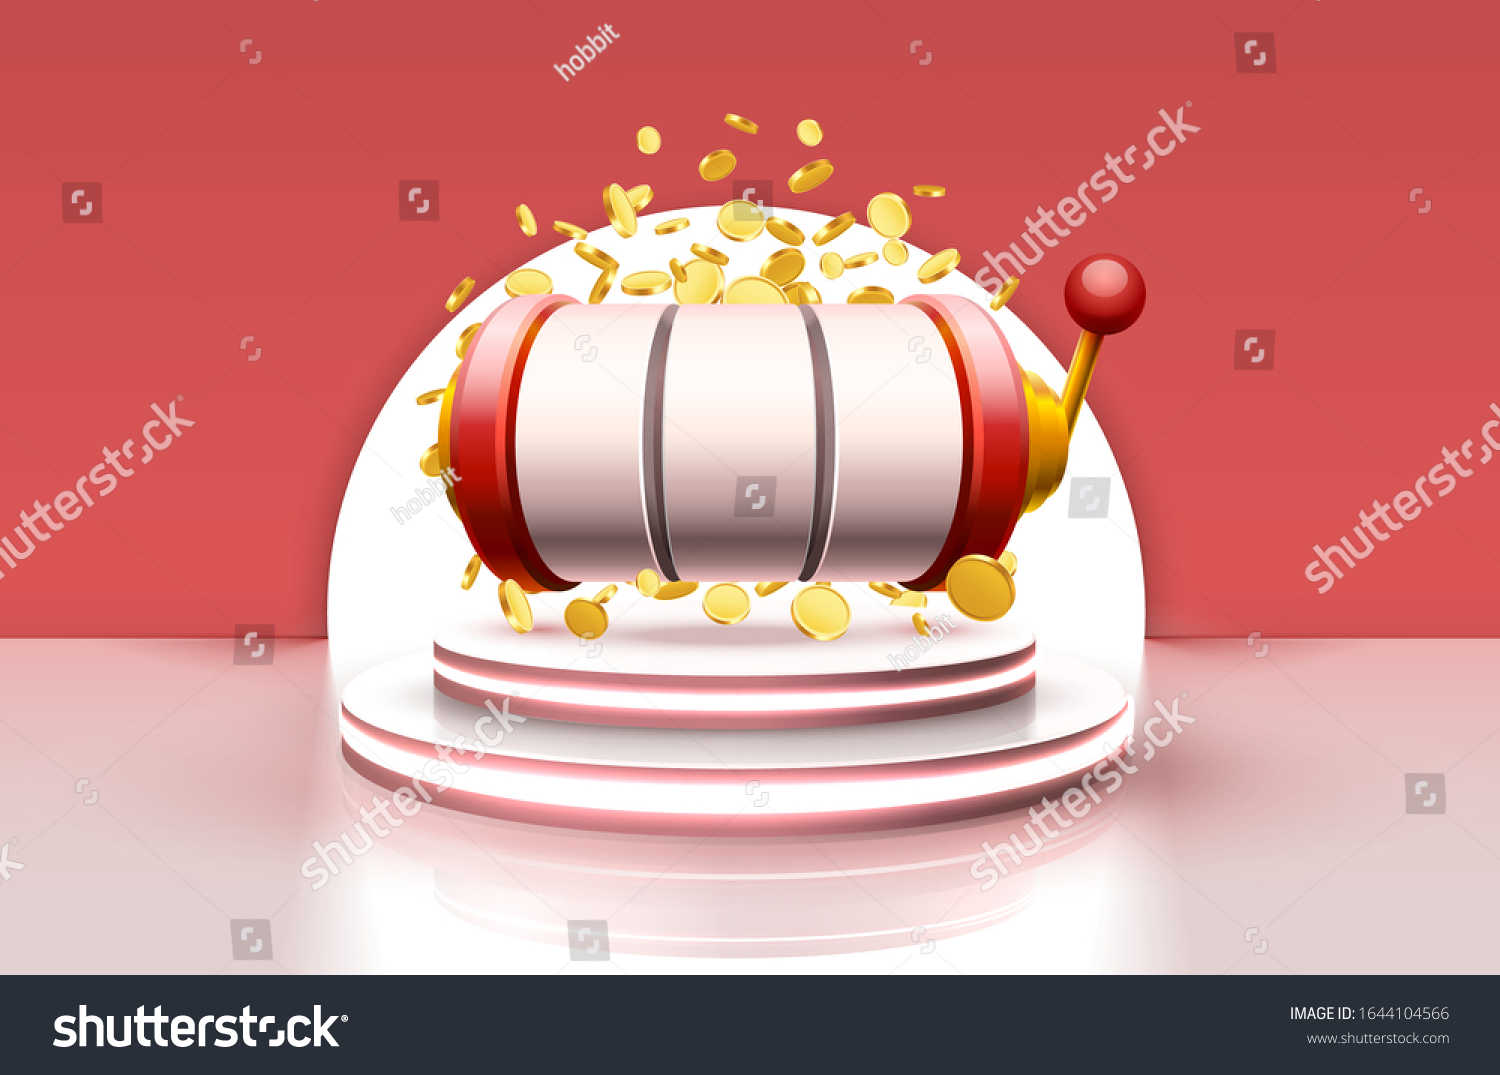 King Slots 777 Banner Casino On Stock Vector Royalty Free 1644104566